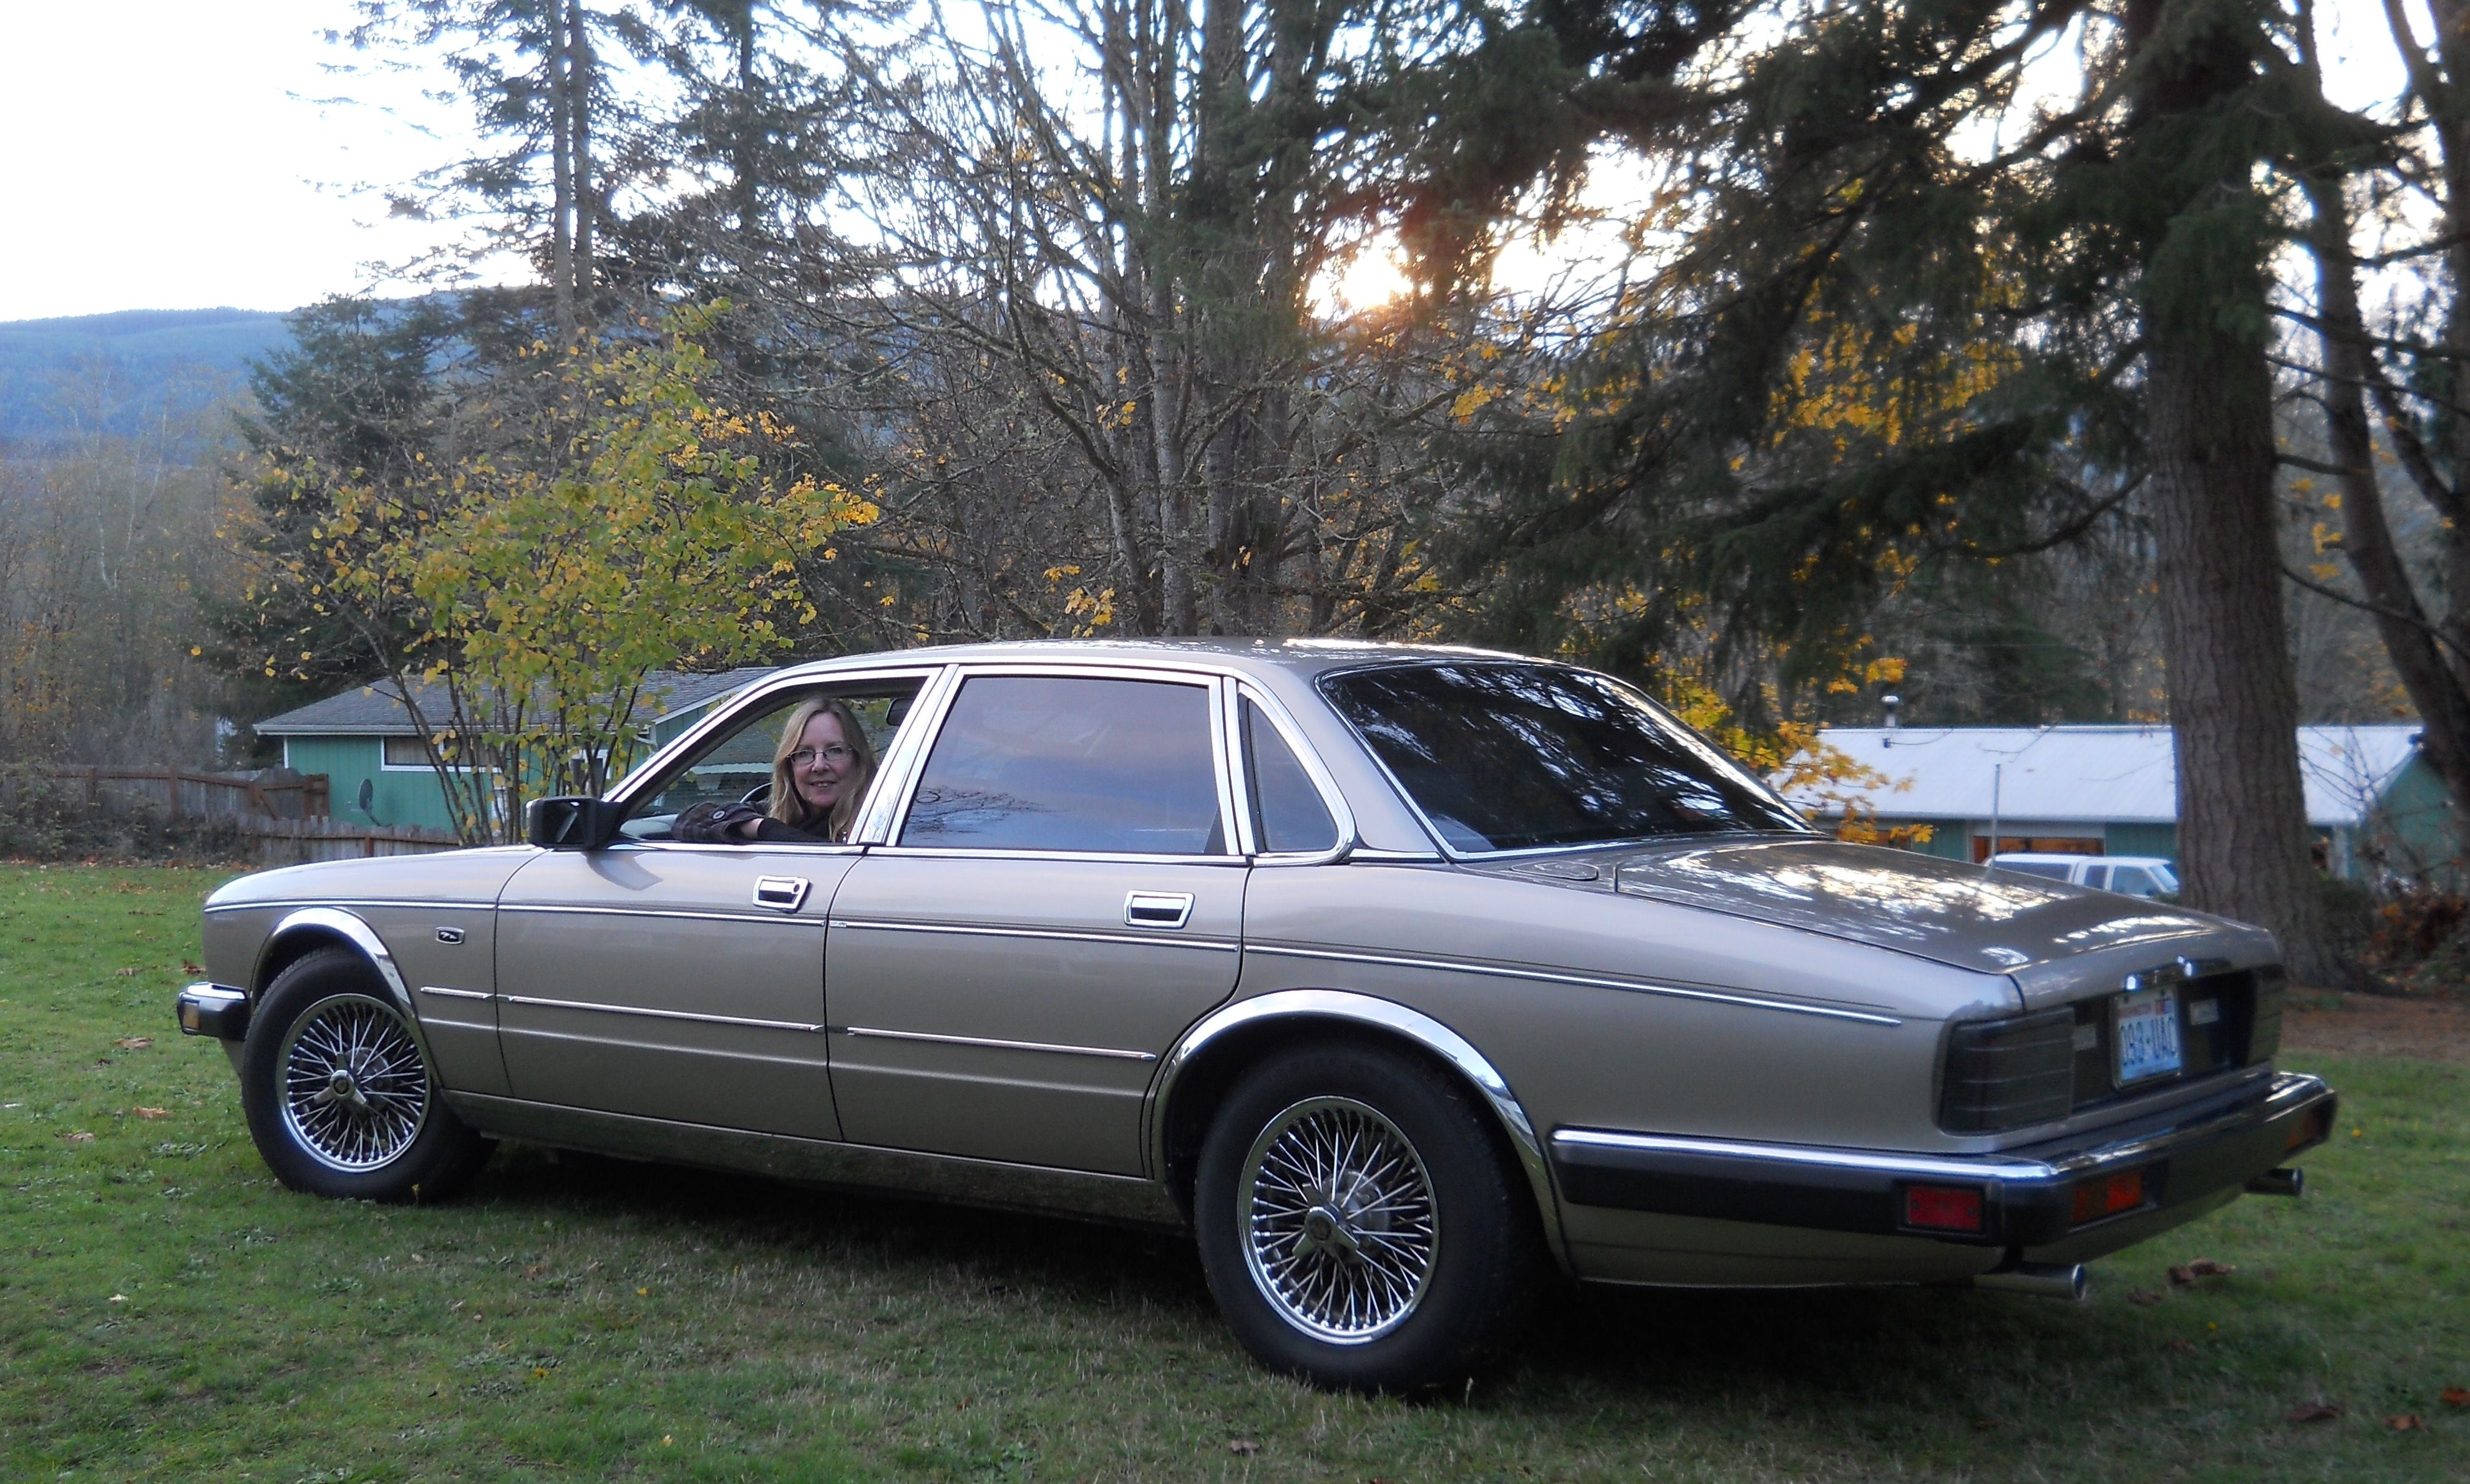 a3e7af3cba6f8e547fce80f4b106cdc2 Take A Look About 1990 Jaguar Xj6